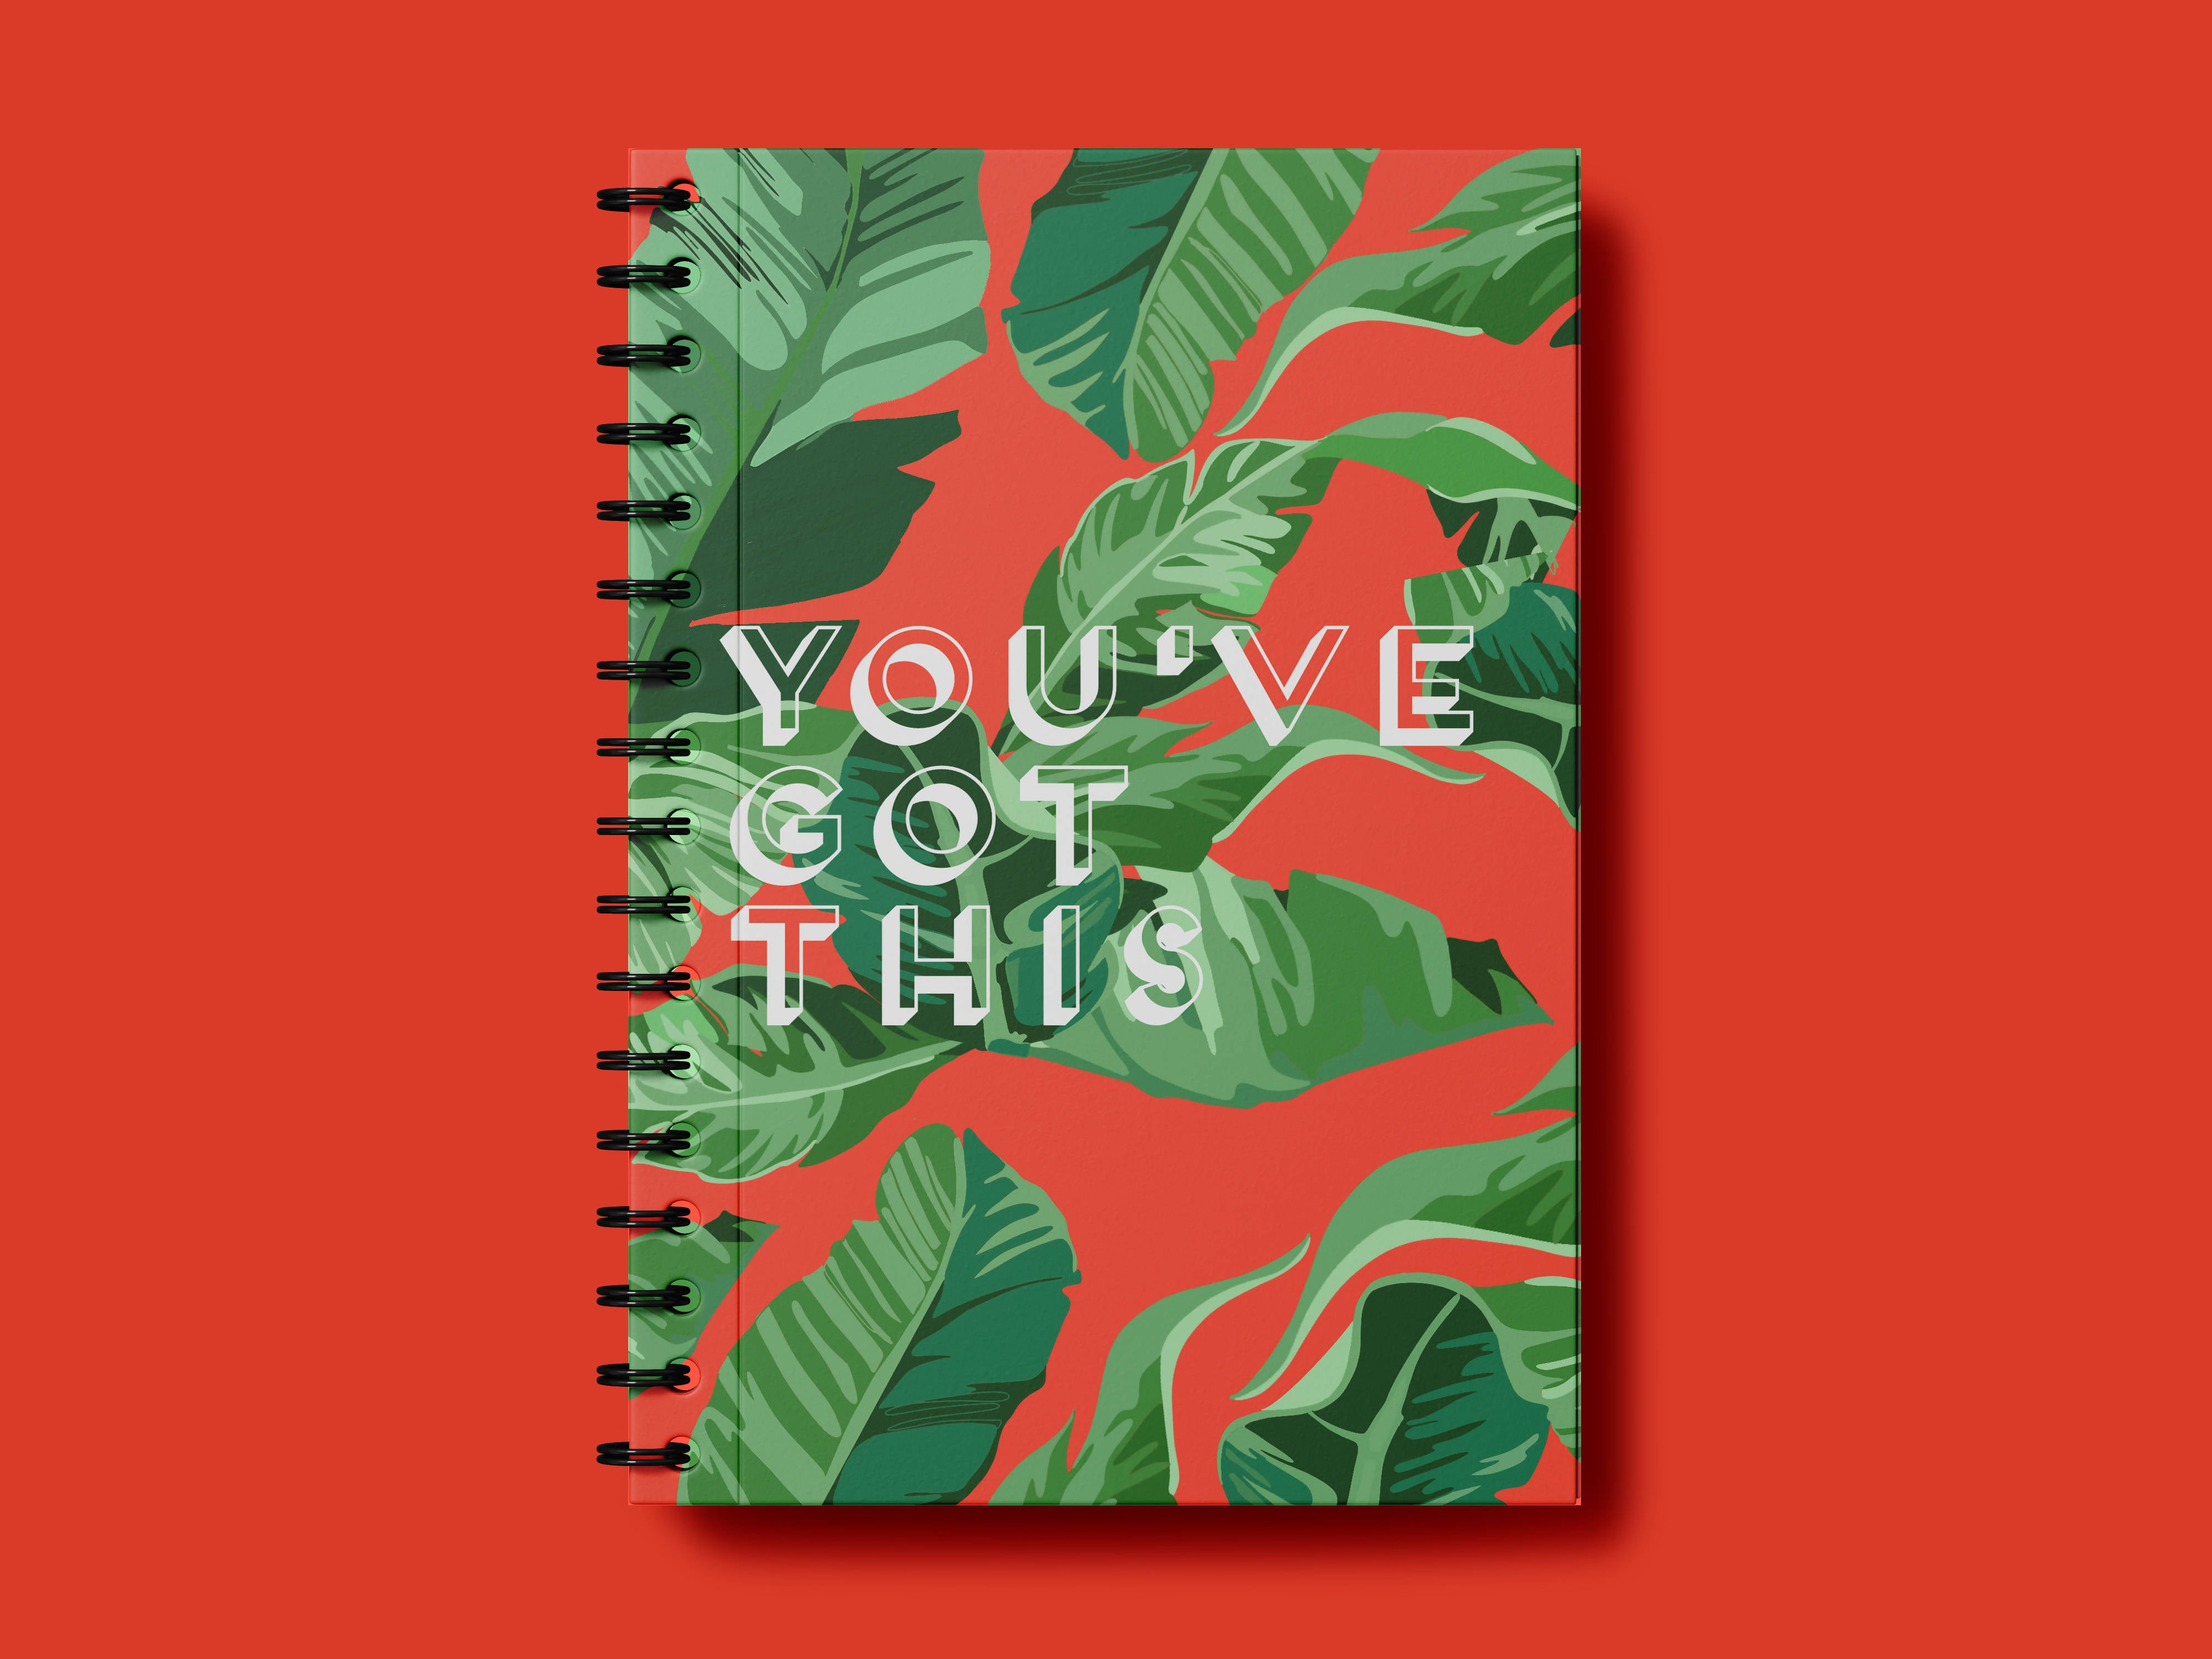 You've got this A5 notebook - Maahi Deshmukh